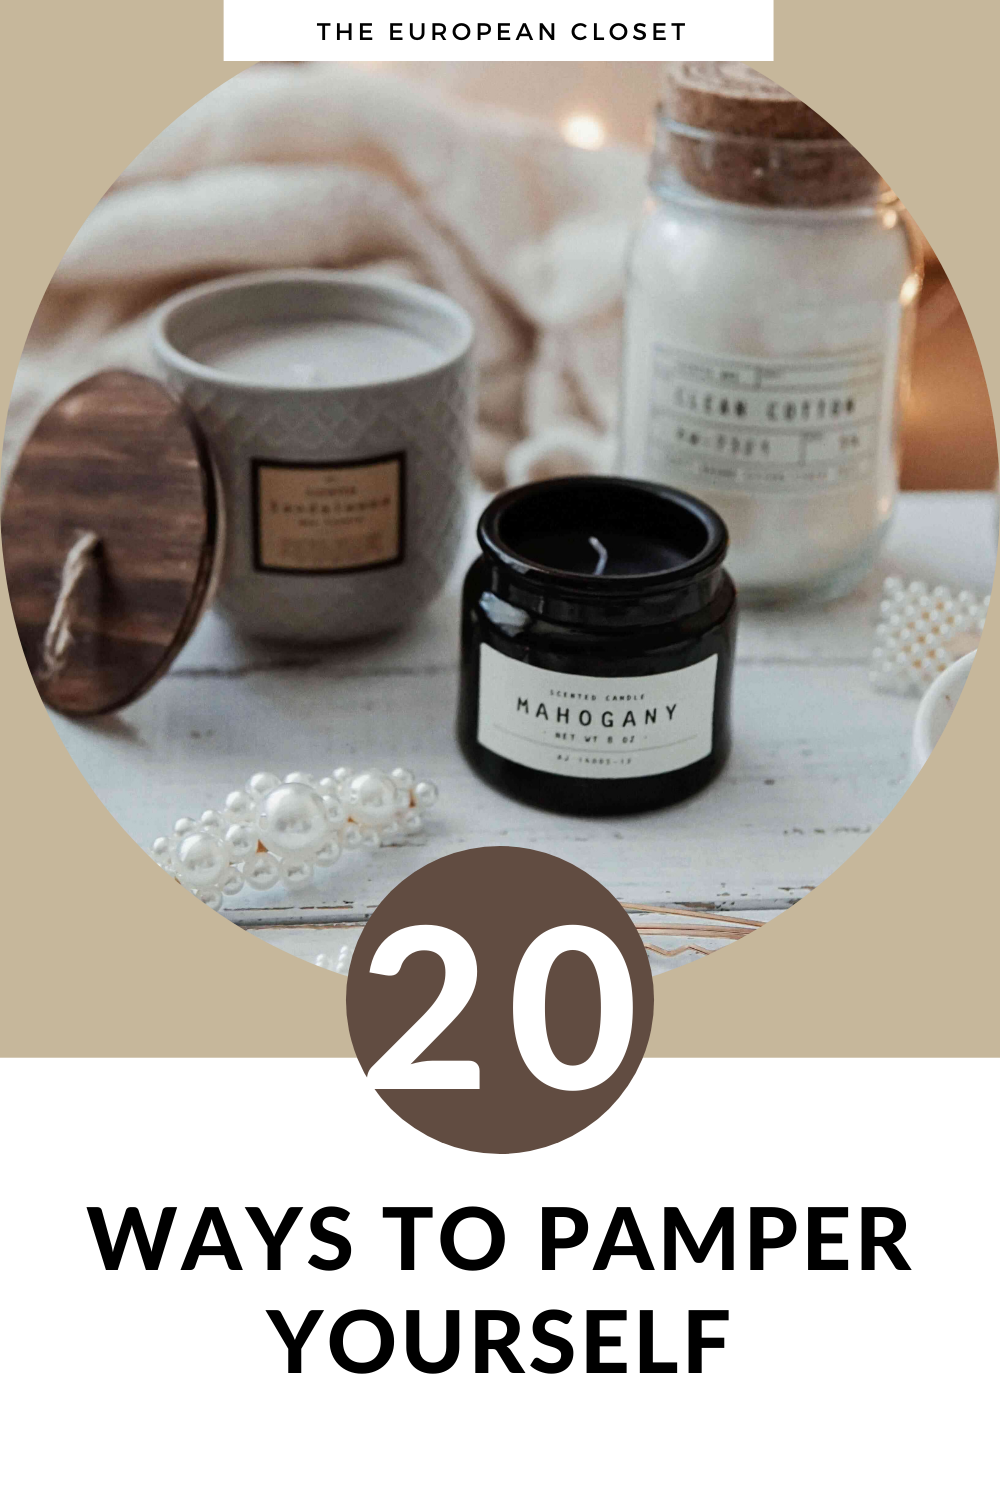 In this day and age, we are stressed-out pretty much 24/7. In today's post we'll take a look at a list of 20 ways to pamper yourself.